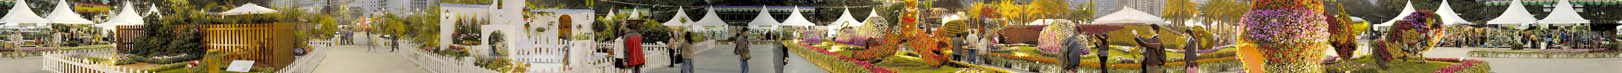 Hong Kong Flower Show 2006 #1